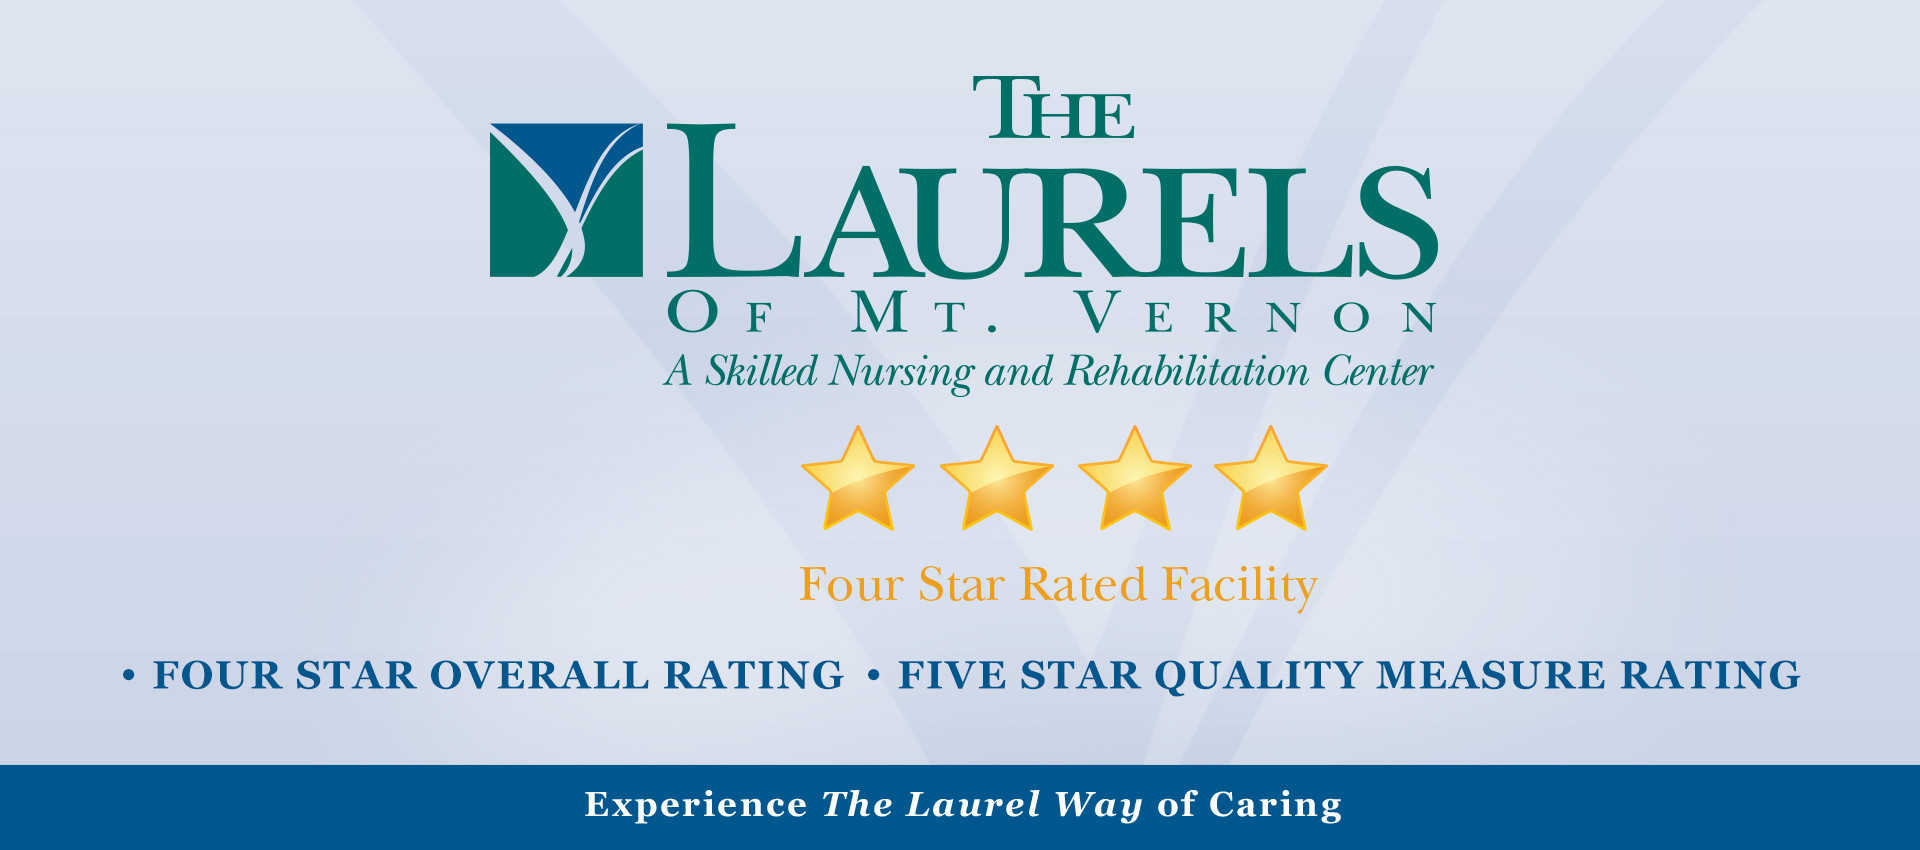 Four Star Overall Rating